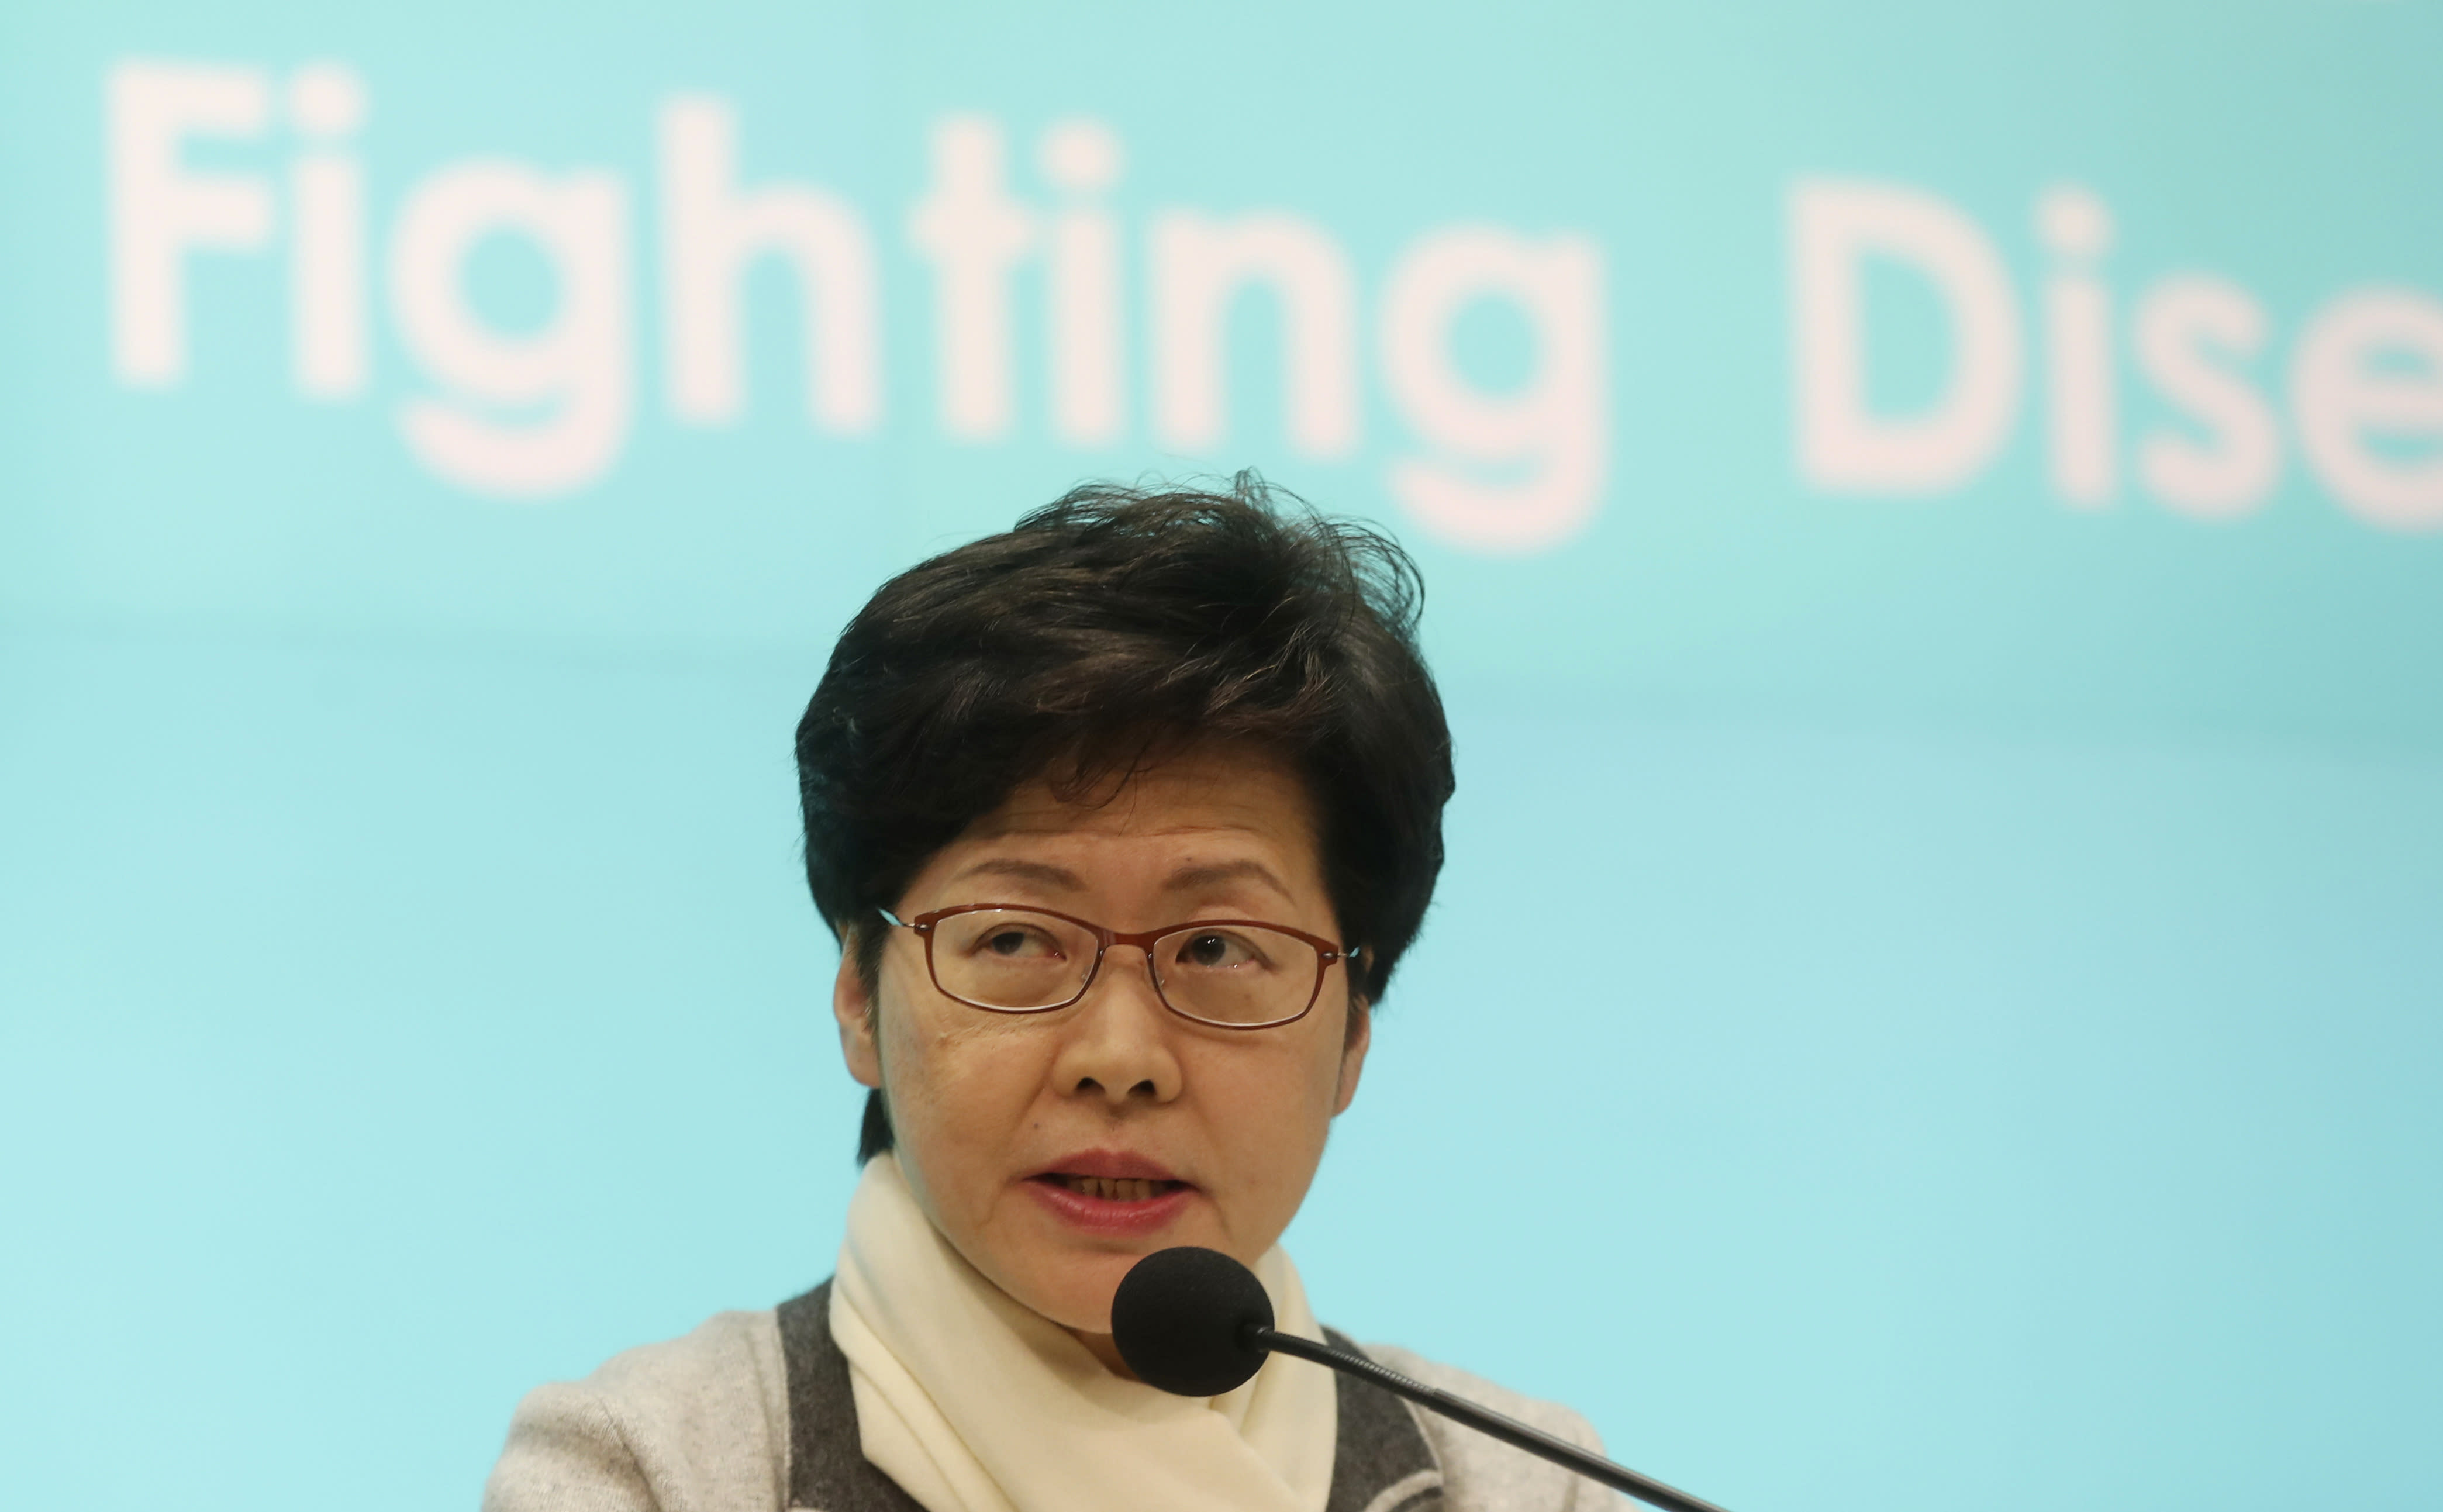 Hong Kong Chief Executive Carrie Lam speaks during a press conference held in Hong Kong Saturday, Jan. 25, 2020. The virus-hit Chinese city of Wuhan, already on lockdown, banned most vehicle use downtown and Hong Kong said it would close schools for two weeks as authorities scrambled Saturday to stop the spread of an illness that has infected more than 1,200 people and killed 41. (AP Photo/Achmad Ibrahim)